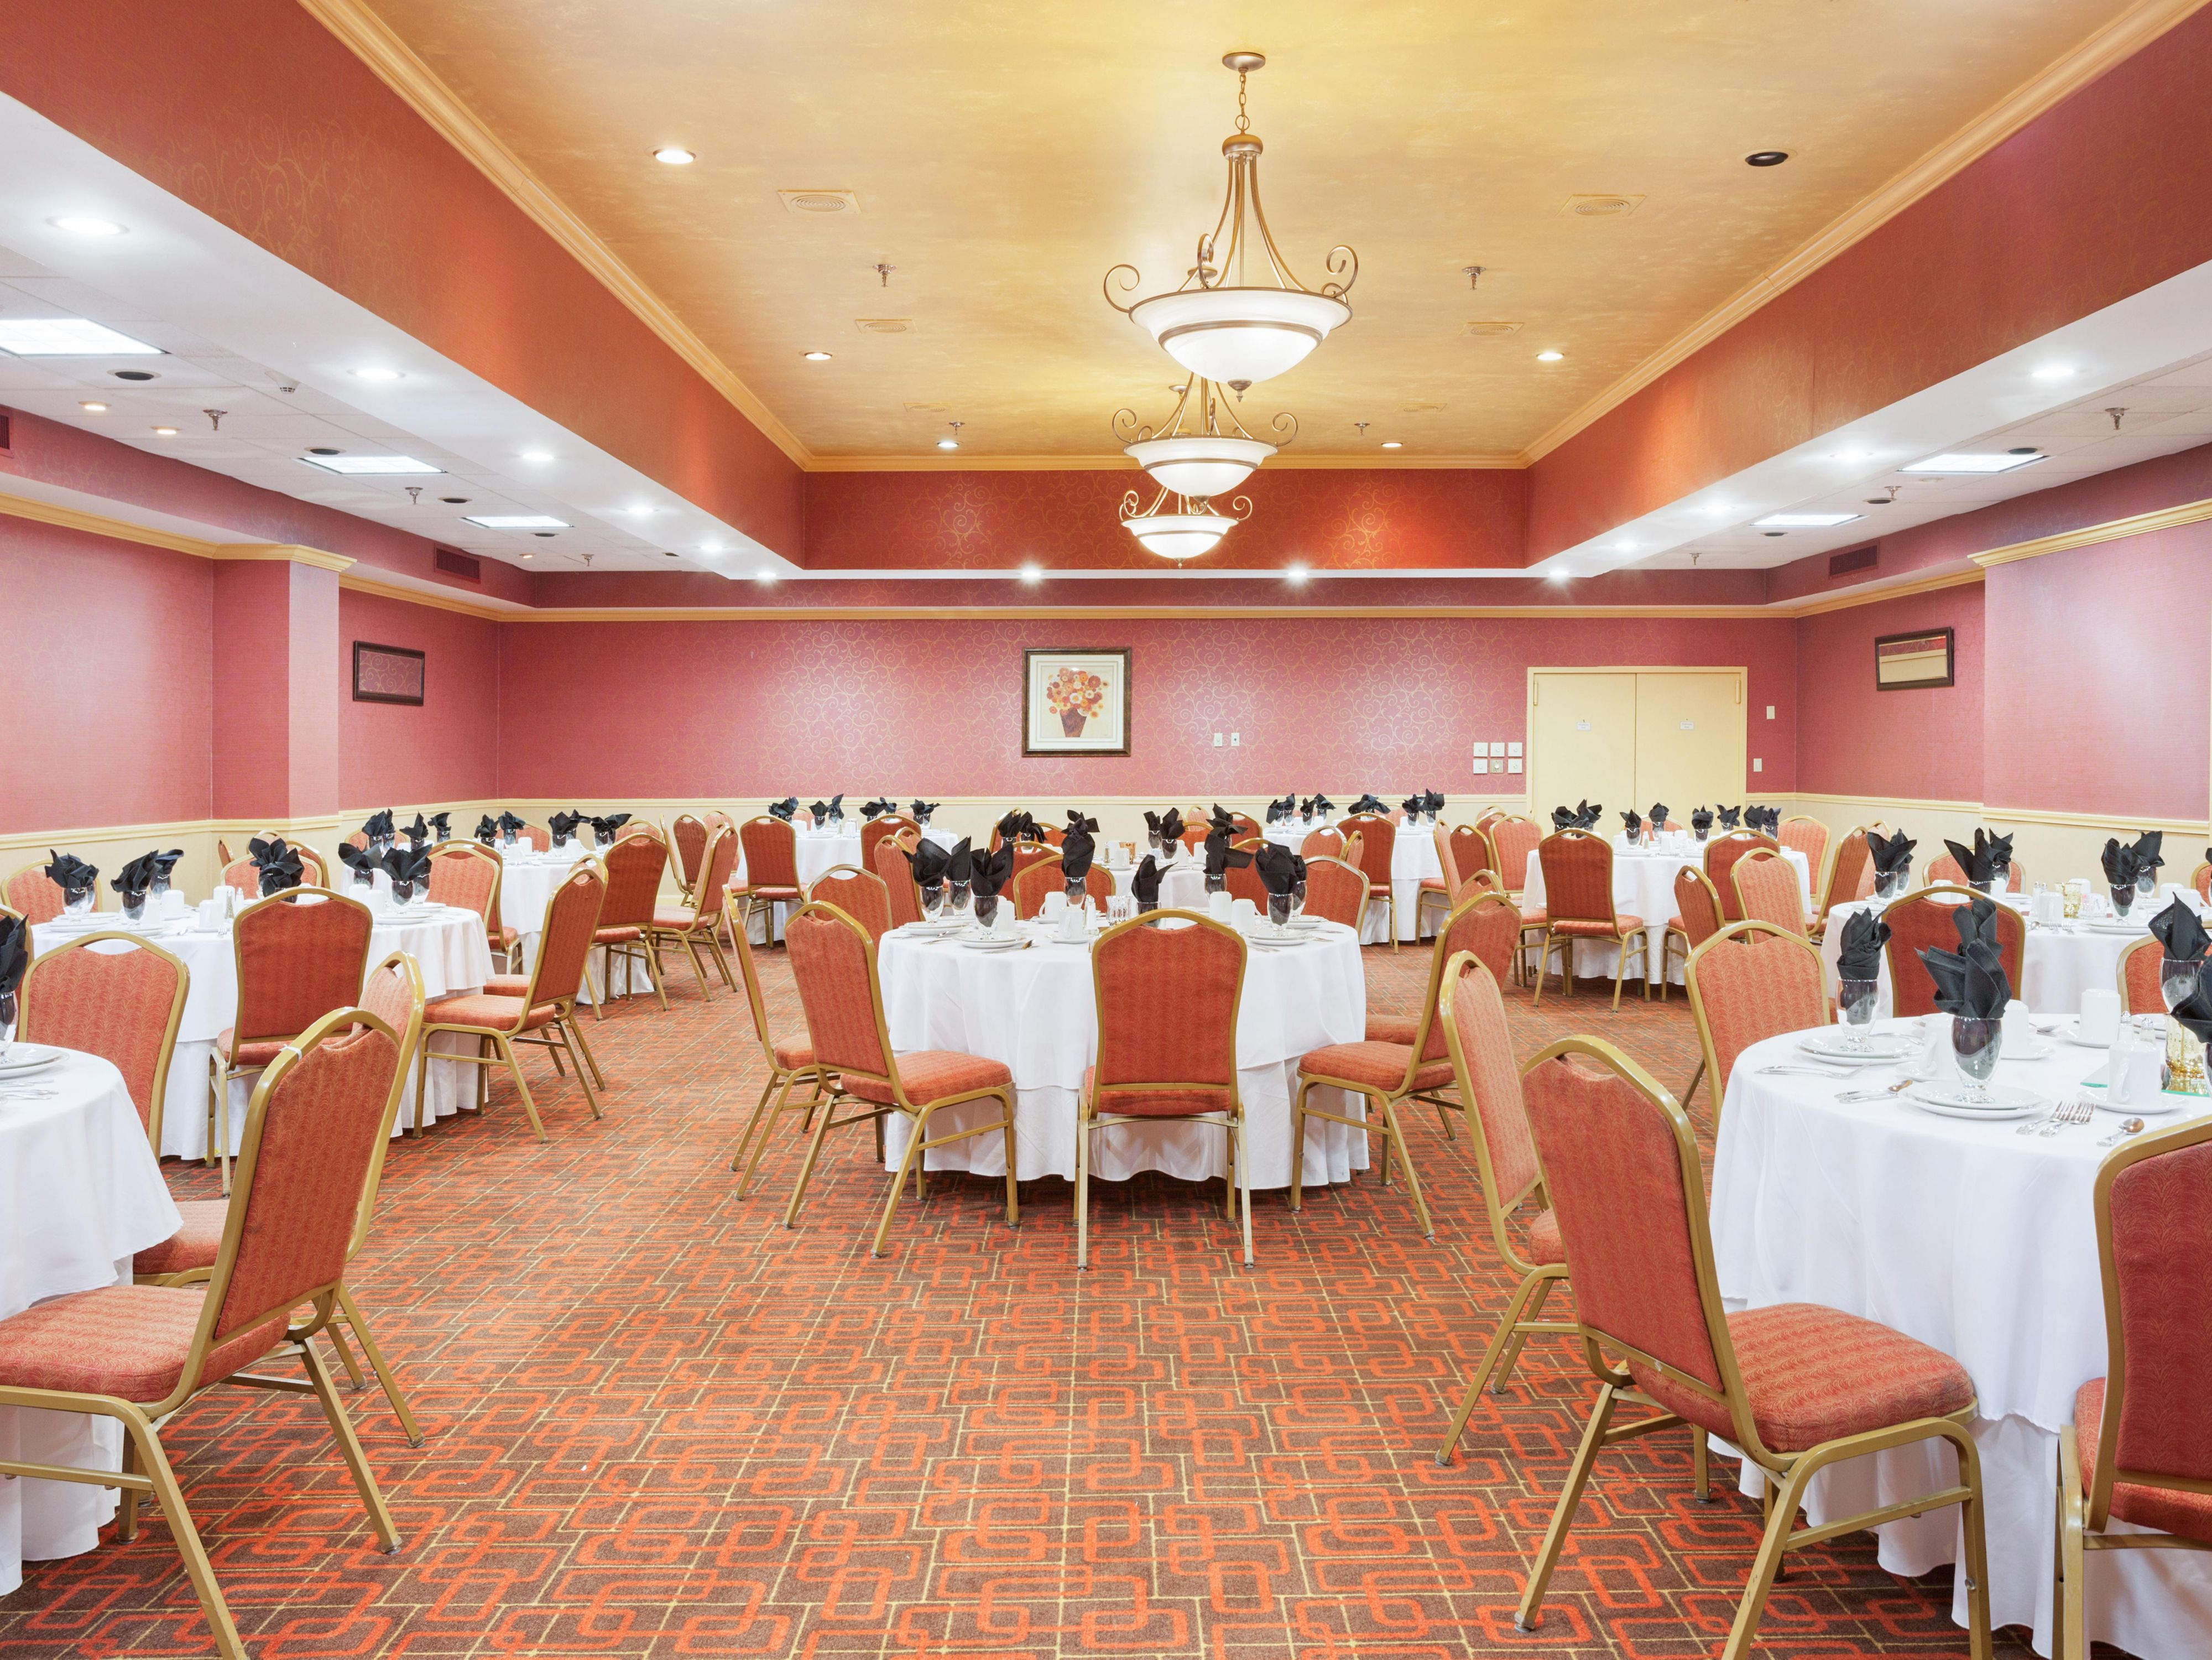 Ballroom - Corporate events for up to 150 people